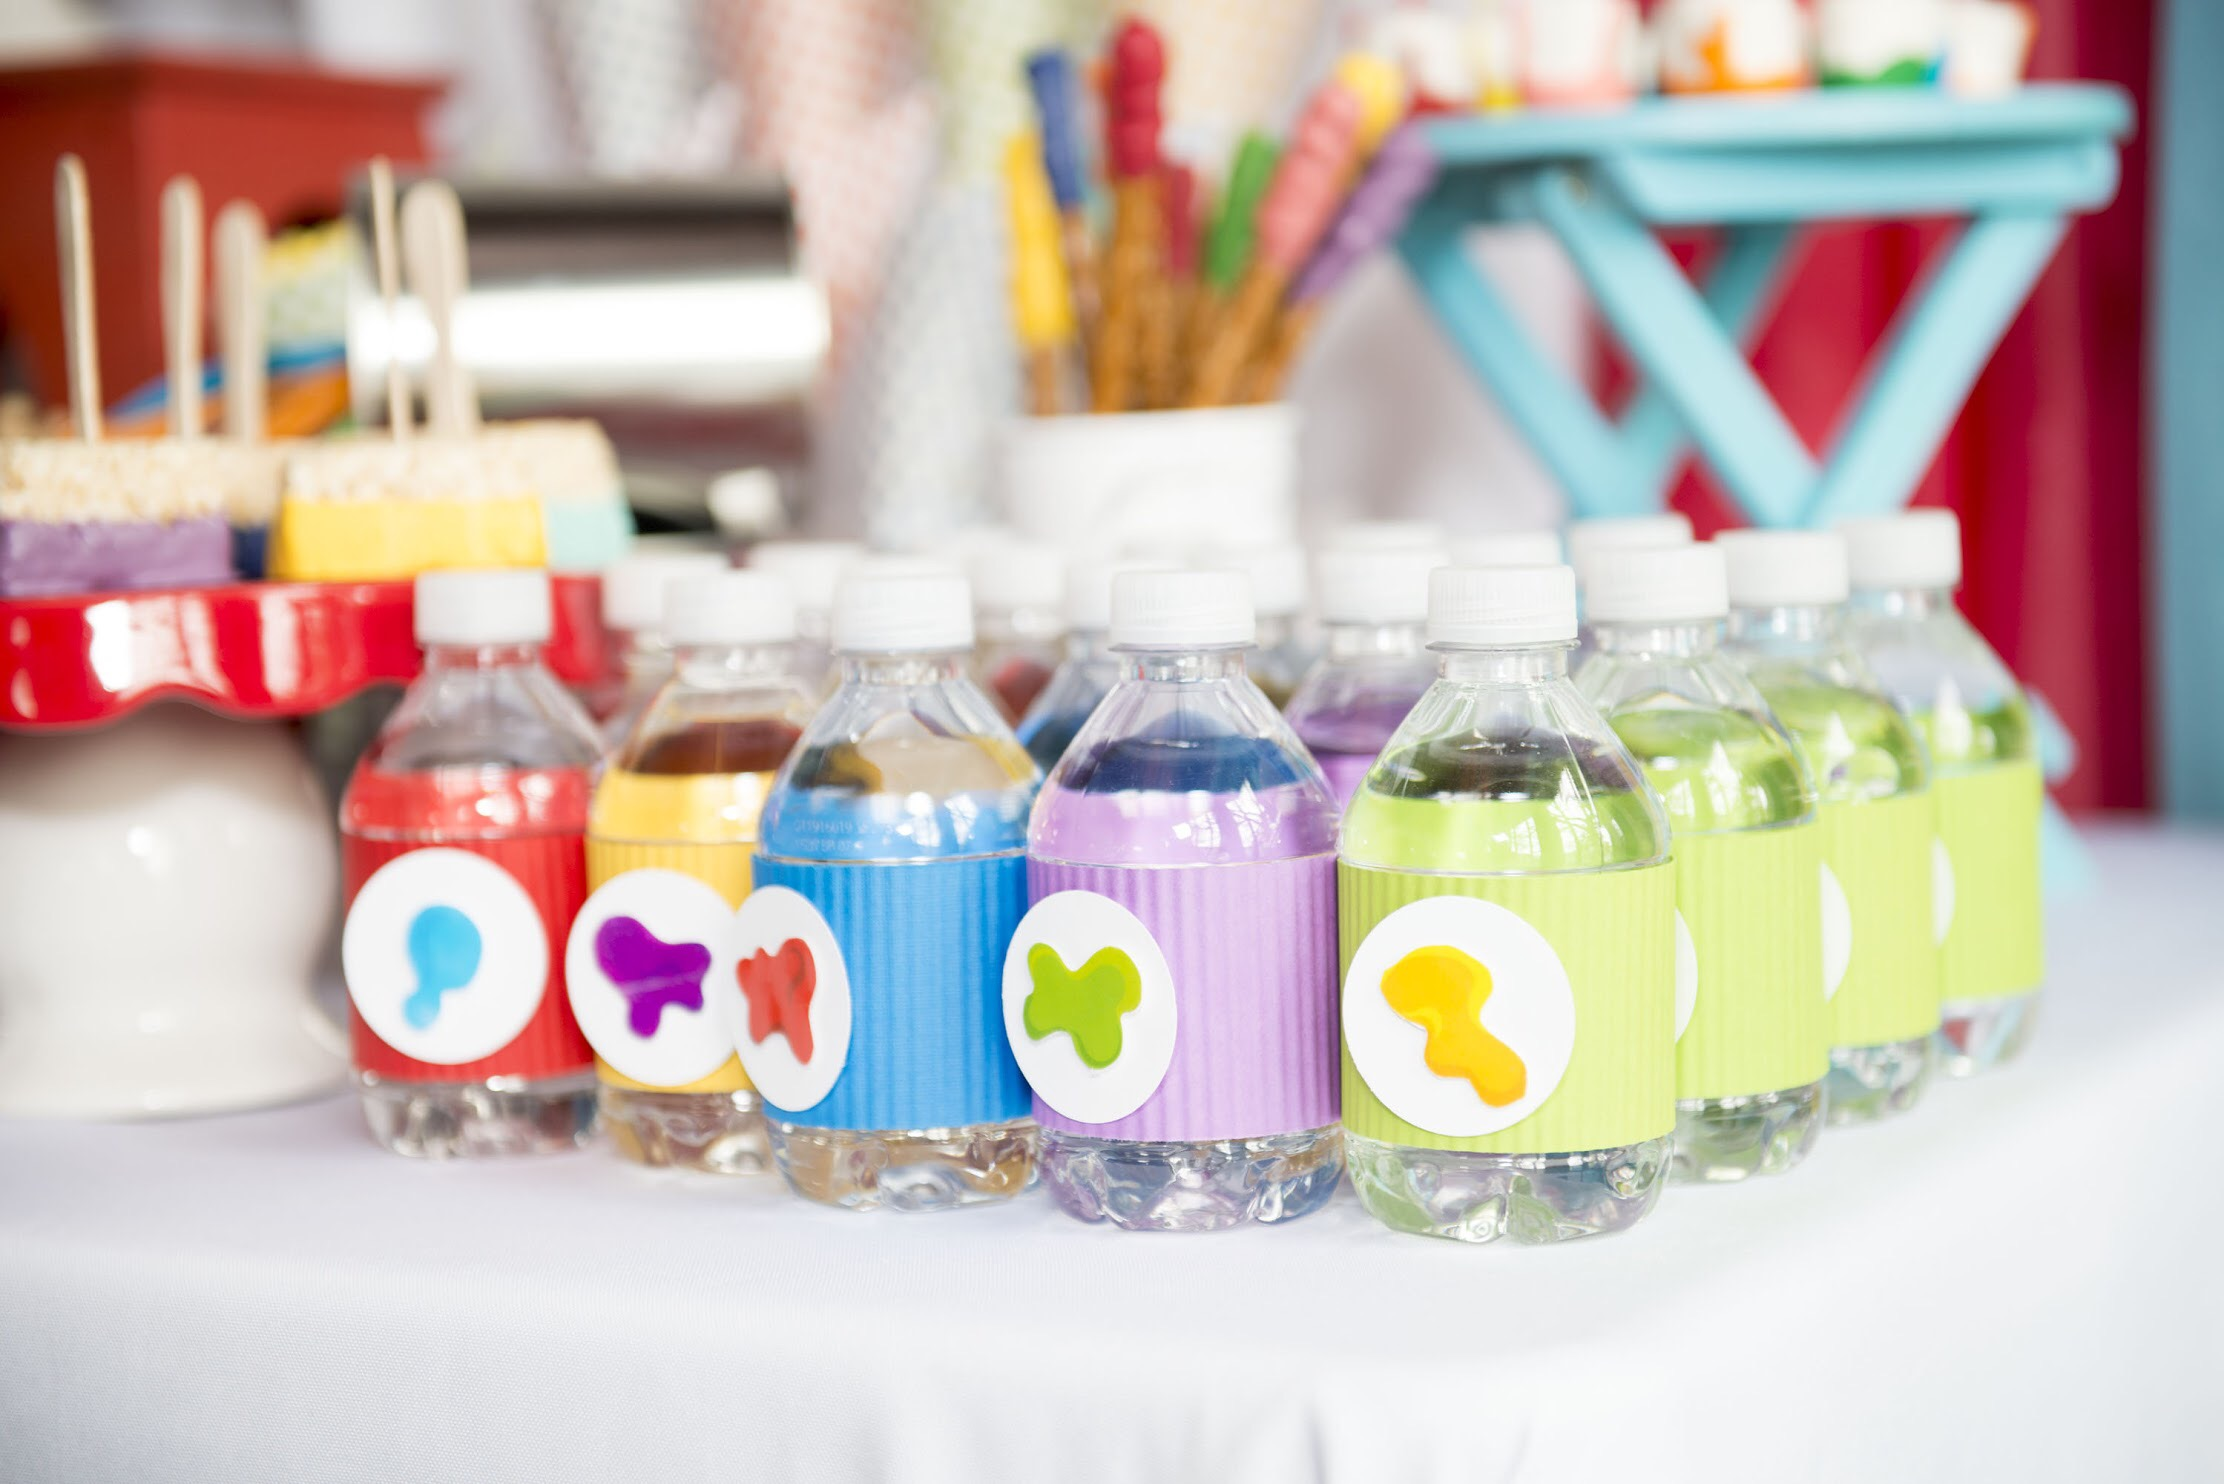 Cute rainbow colored labels on these water bottles are perfect for a little artists party. Click to see all the art themed party ideas on Mint Event Design www.minteventdesign.com #kidsparty #kidspartyideas #birthdaypartyideas #artparty #rainbowparty